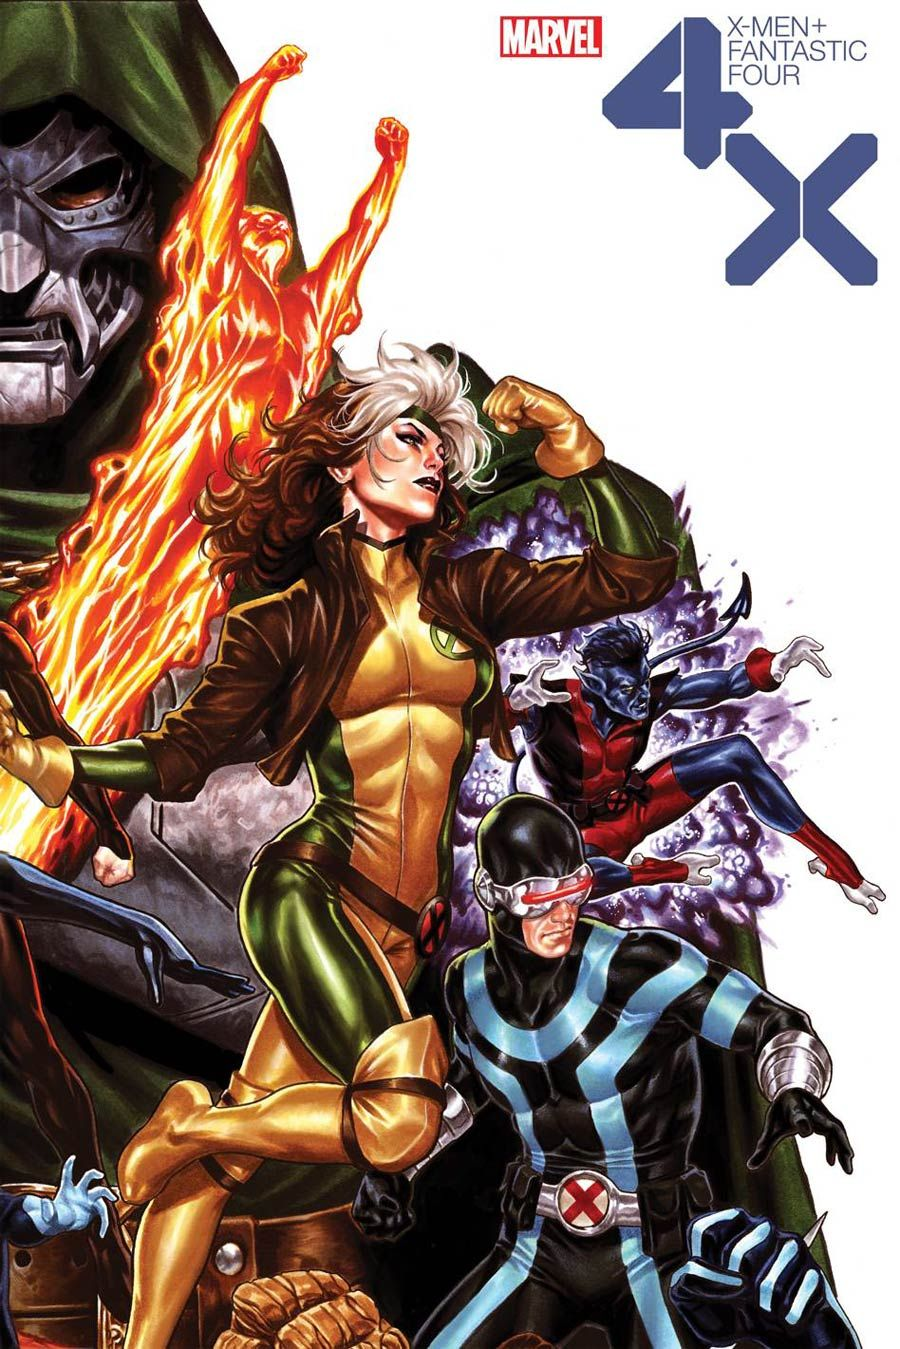 X Men Fantastic Four 2 In 2020 Xmen Comics X Men Marvel Comics Art